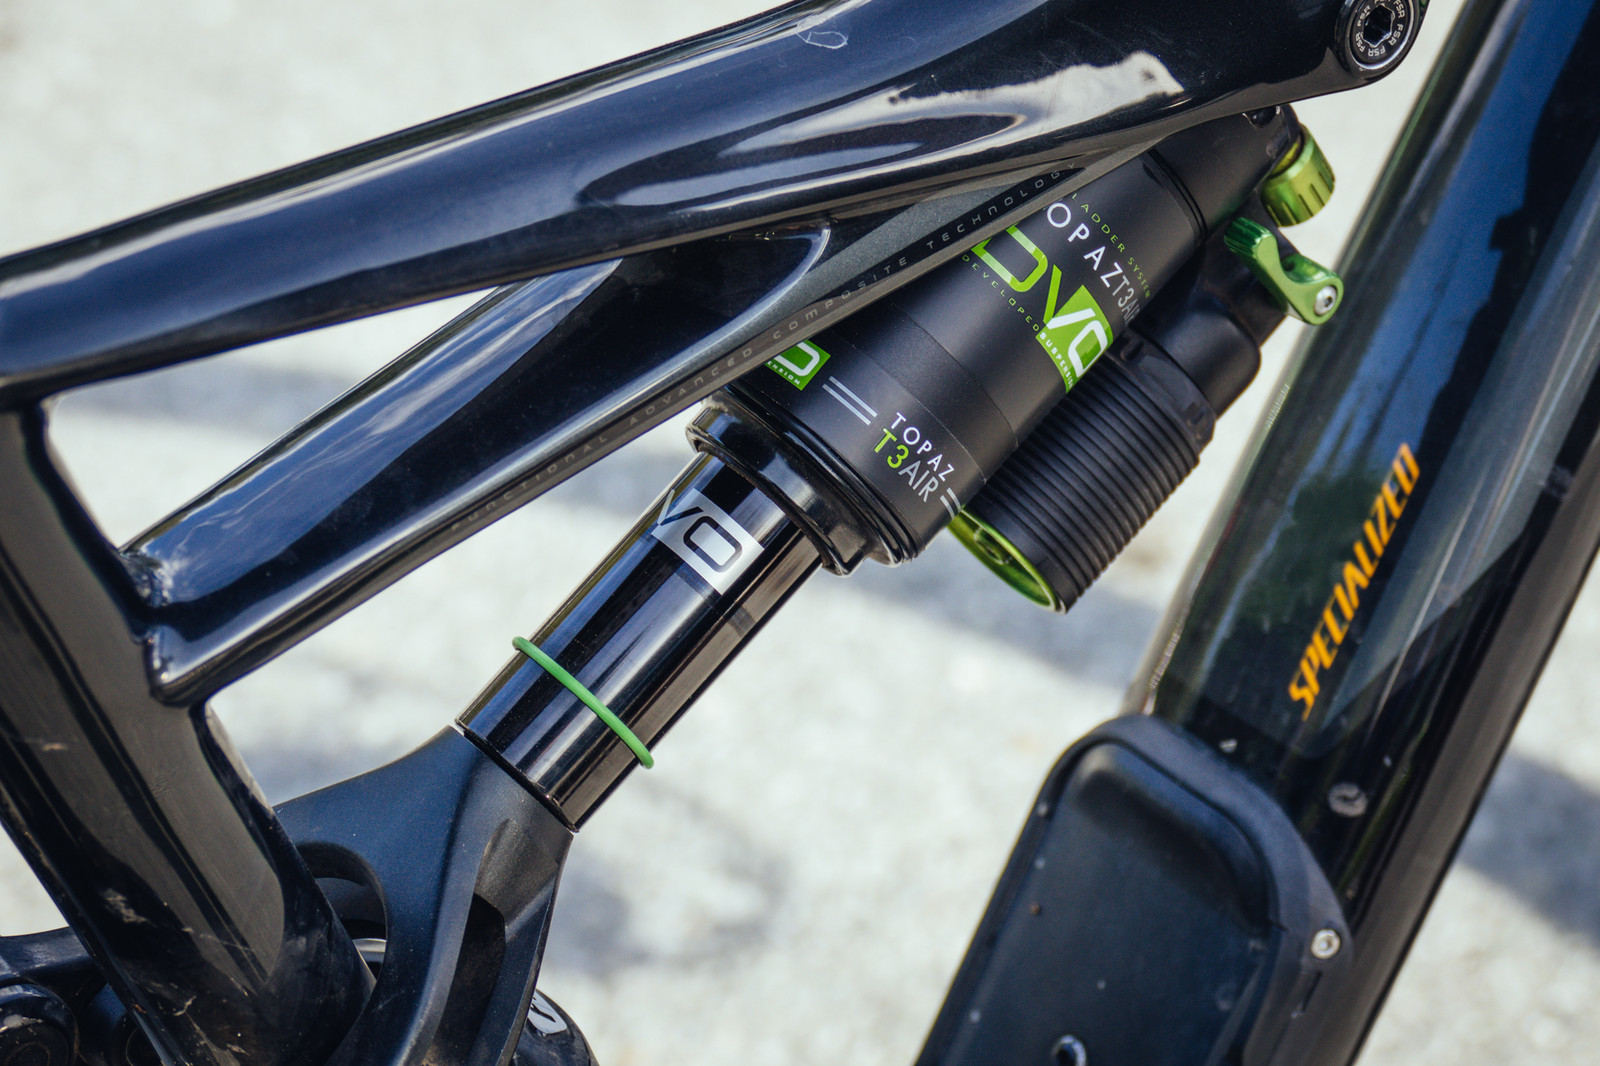 DVO Topaz T3 Air Shock for Specialized Bikes - PIT BITS - New 2017 Products from Crankworx Whistler - Mountain Biking Pictures - Vital MTB